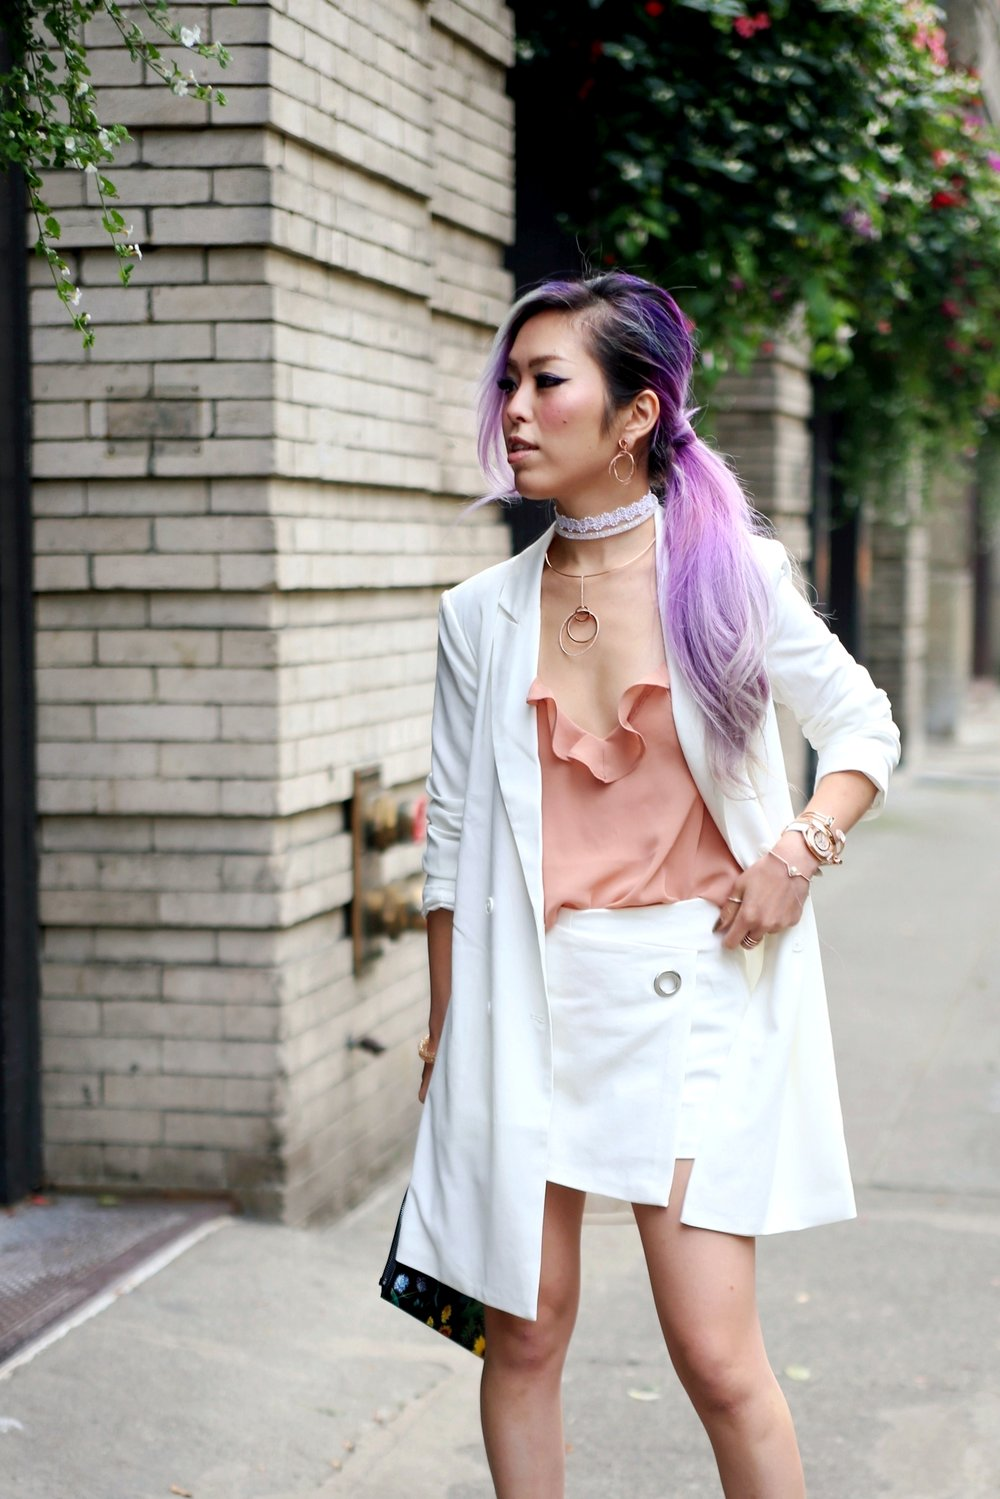 Swarovski Crystaldust Bangle Double White, Forever 21 Mini Blazer Dress & Chiffon Cami_Zara White CROSSOVER CULOTTES_Alice + Olivia Printed Leather Clutch_Shoedazzle Nude Pumps_Swarovski Flash Necklace & Flashed Pierced Earrings & Crystalline Oval Rose Gold Tone Bracelet Watch_Aikas Love Closet_Seattle Fashion Blogger_Japan_Lavender hair_Purple hair